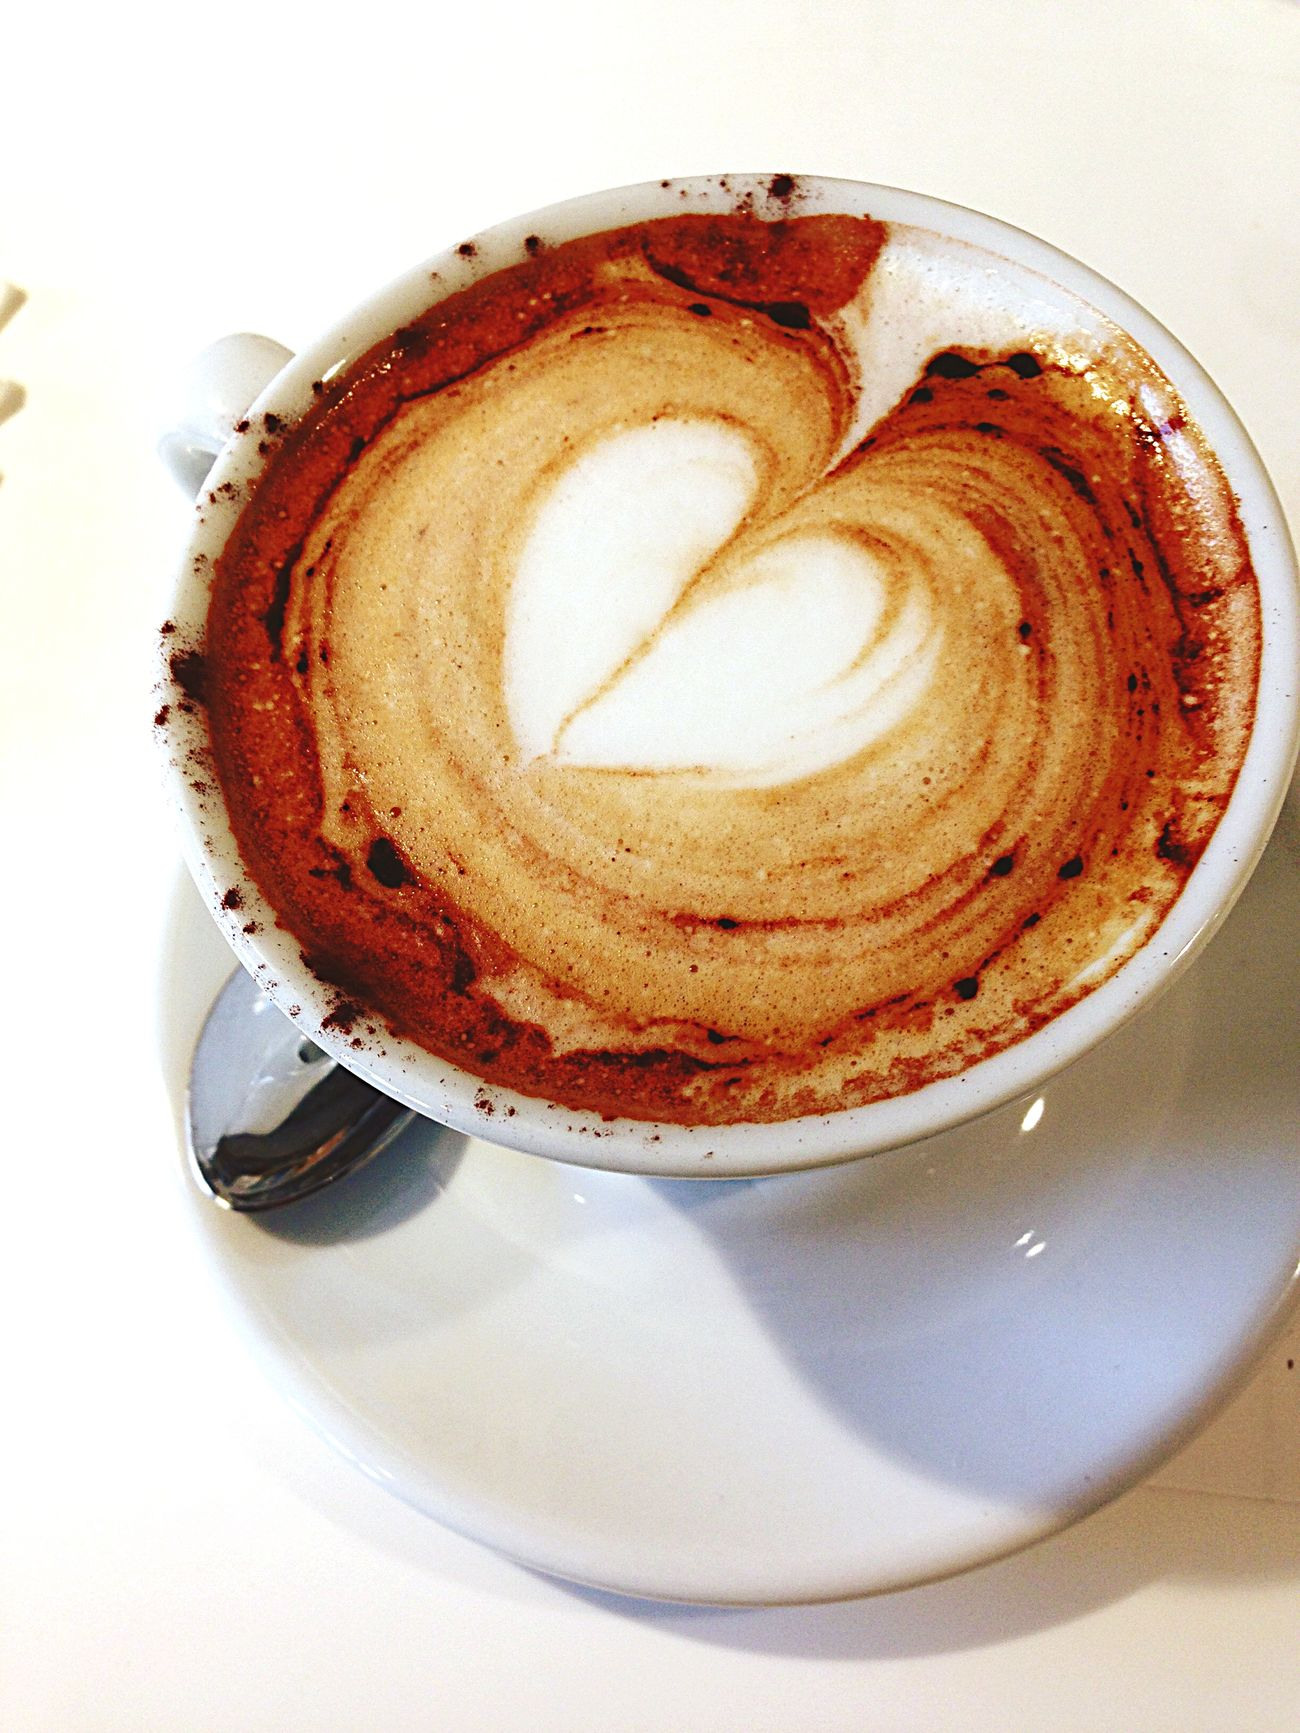 Obviously made with love... It's Friday, so I deserve a Cappachino! Italian style.